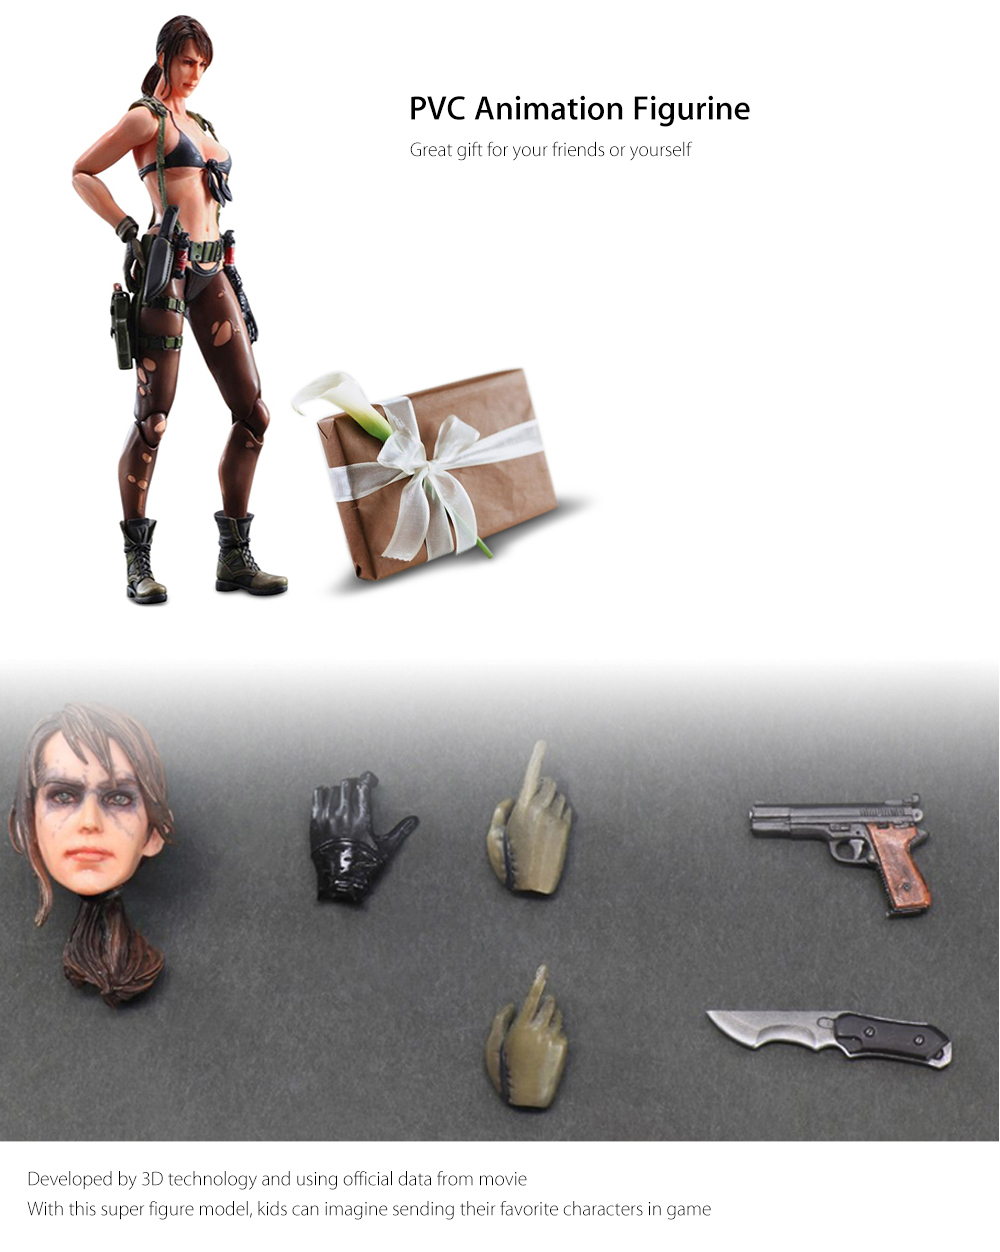 BEILEXING PVC Model Action Game Collectible Figurine Toy - 10.63 inch